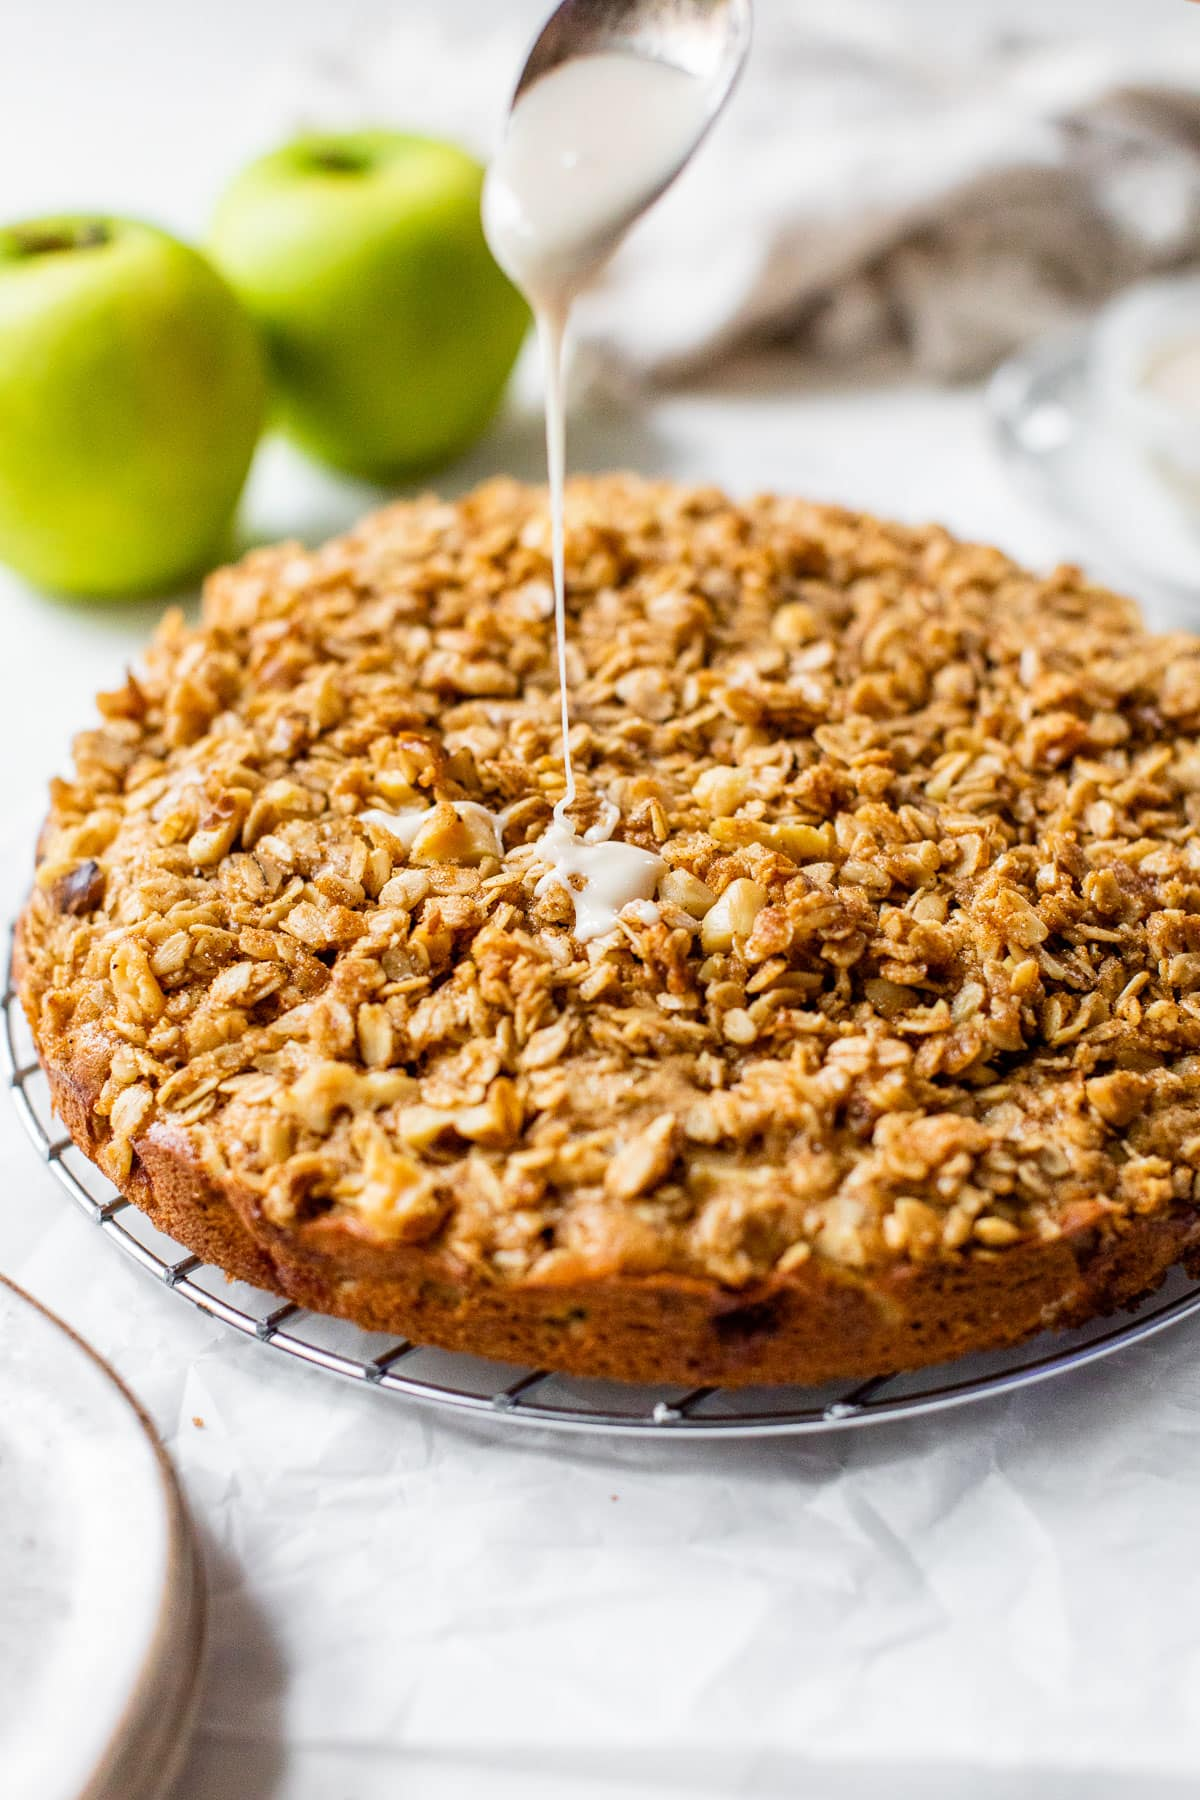 Fresh Apple Coffee Cake with glaze being poured on top